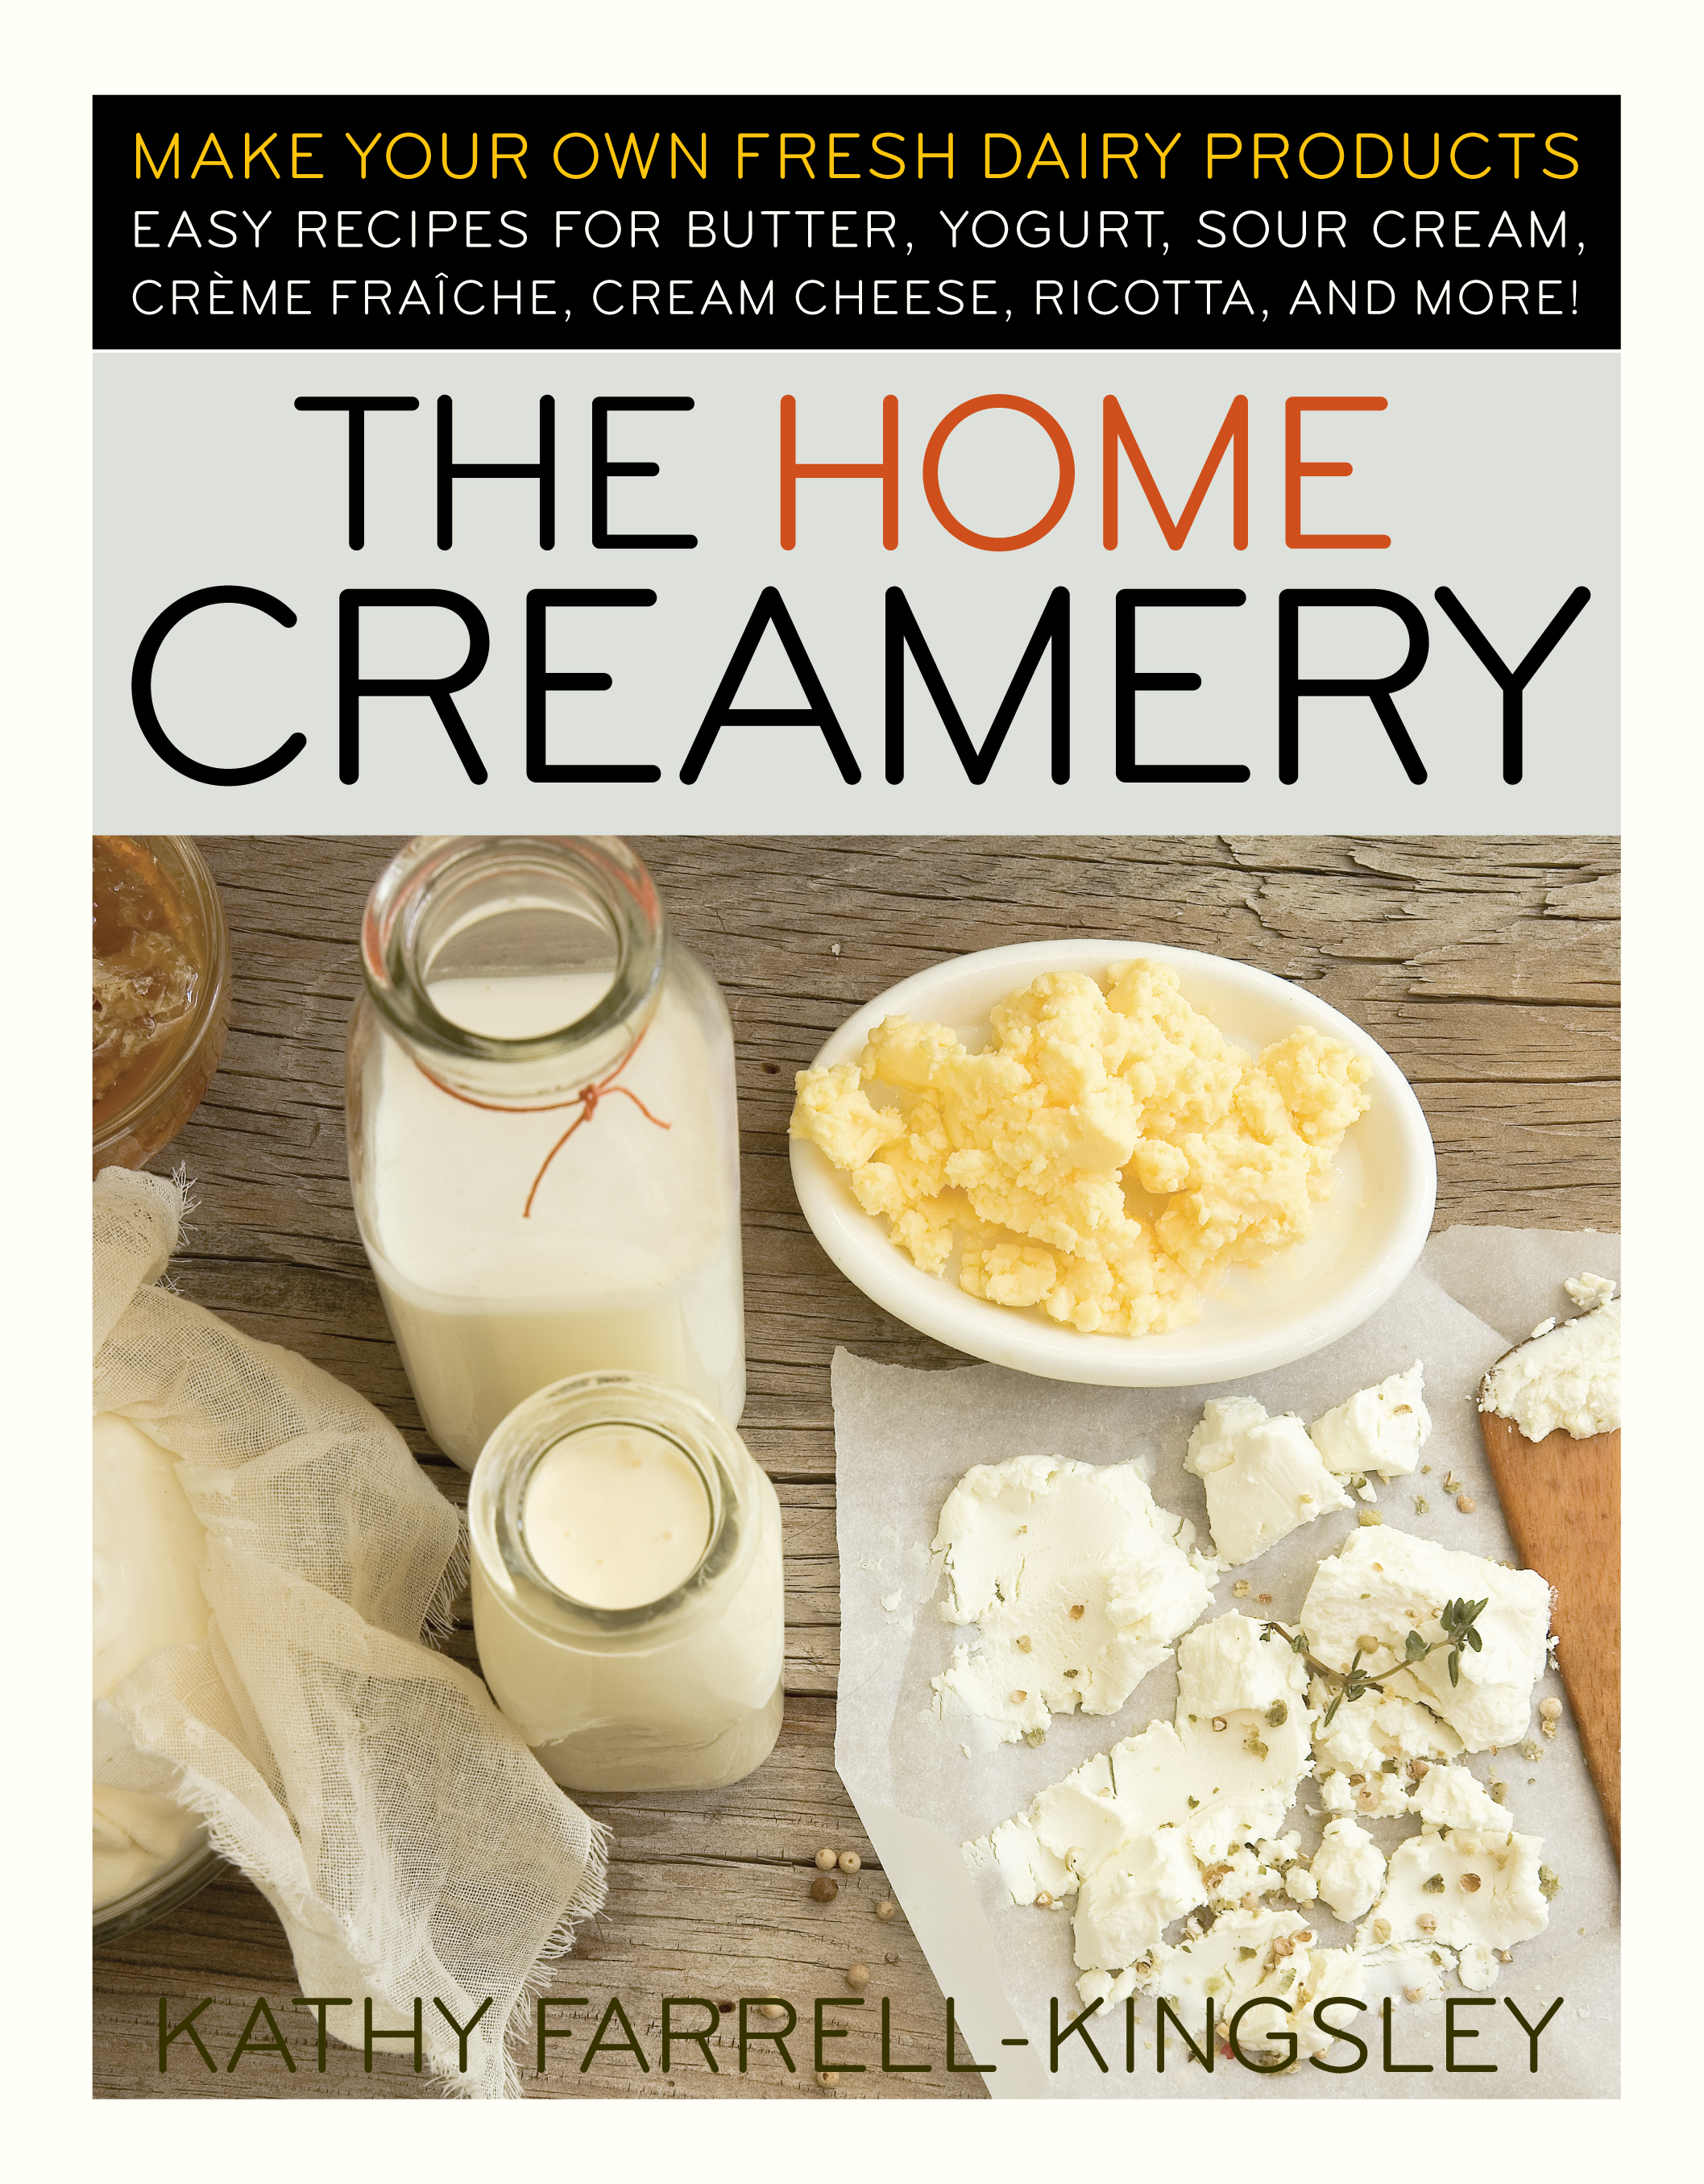 The Home Creamery Make Your Own Fresh Dairy Products; Easy Recipes for Butter, Yogurt, Sour Cream, Creme Fraiche, Cream Cheese, Ricotta, and More! - Kathy Farrell-Kingsley